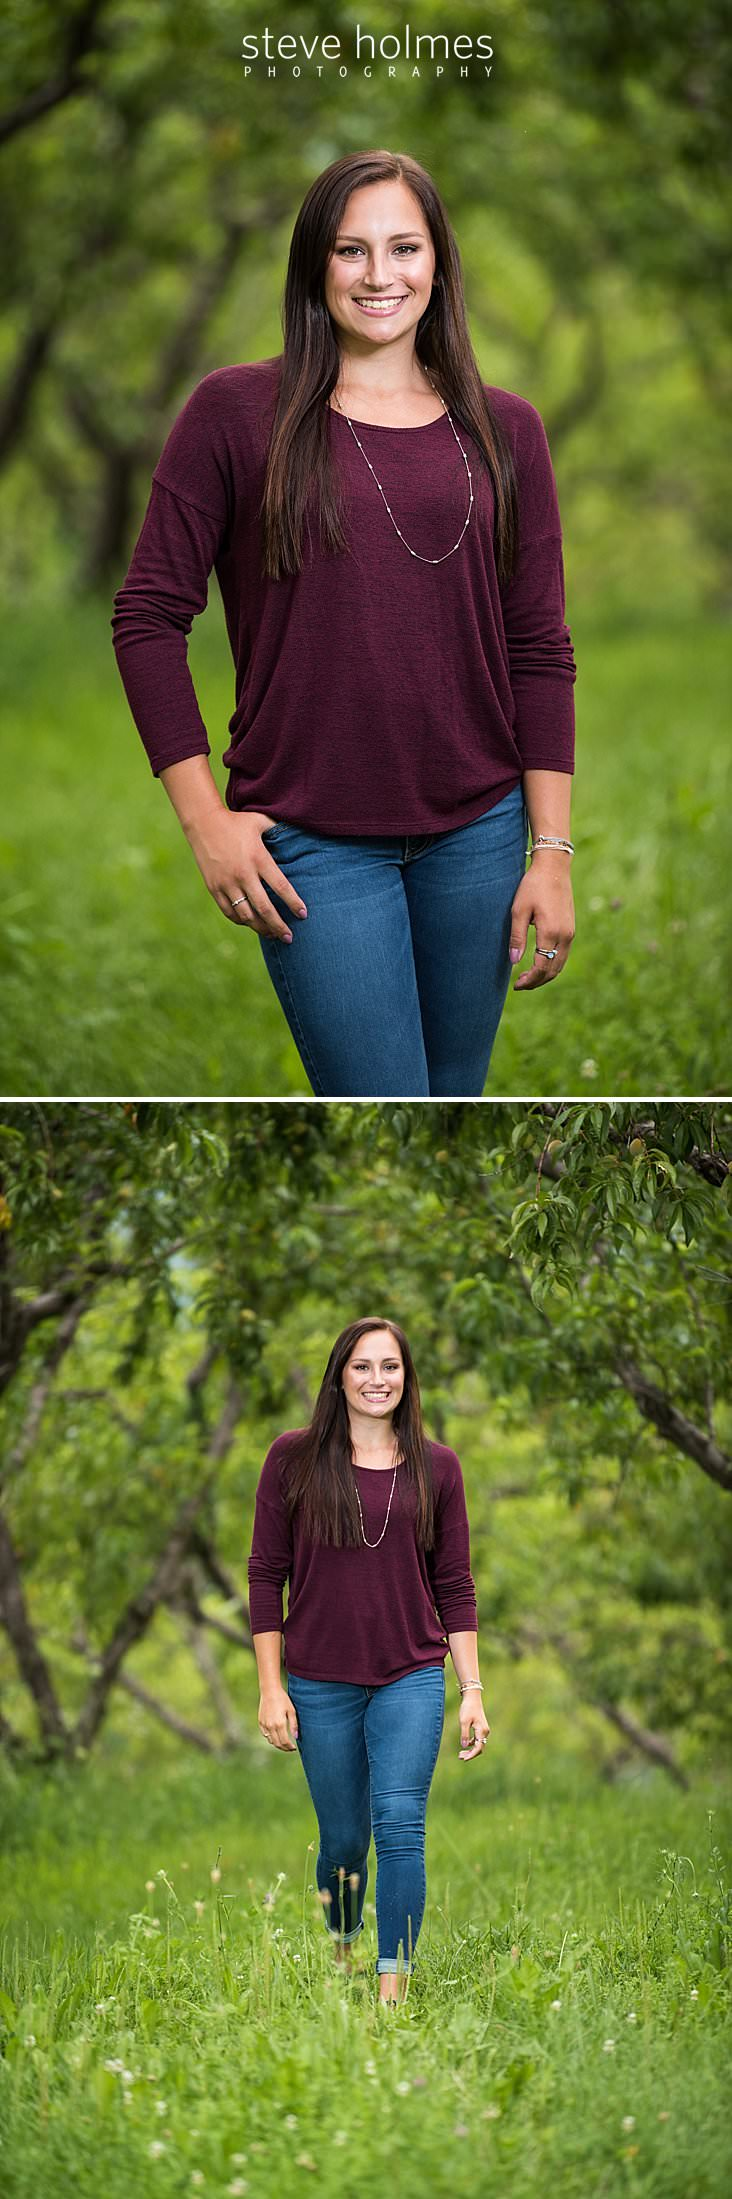 04_Outdoor senior portrait of brunette wearing long sleeve maroon shirt and jeans_.jpg